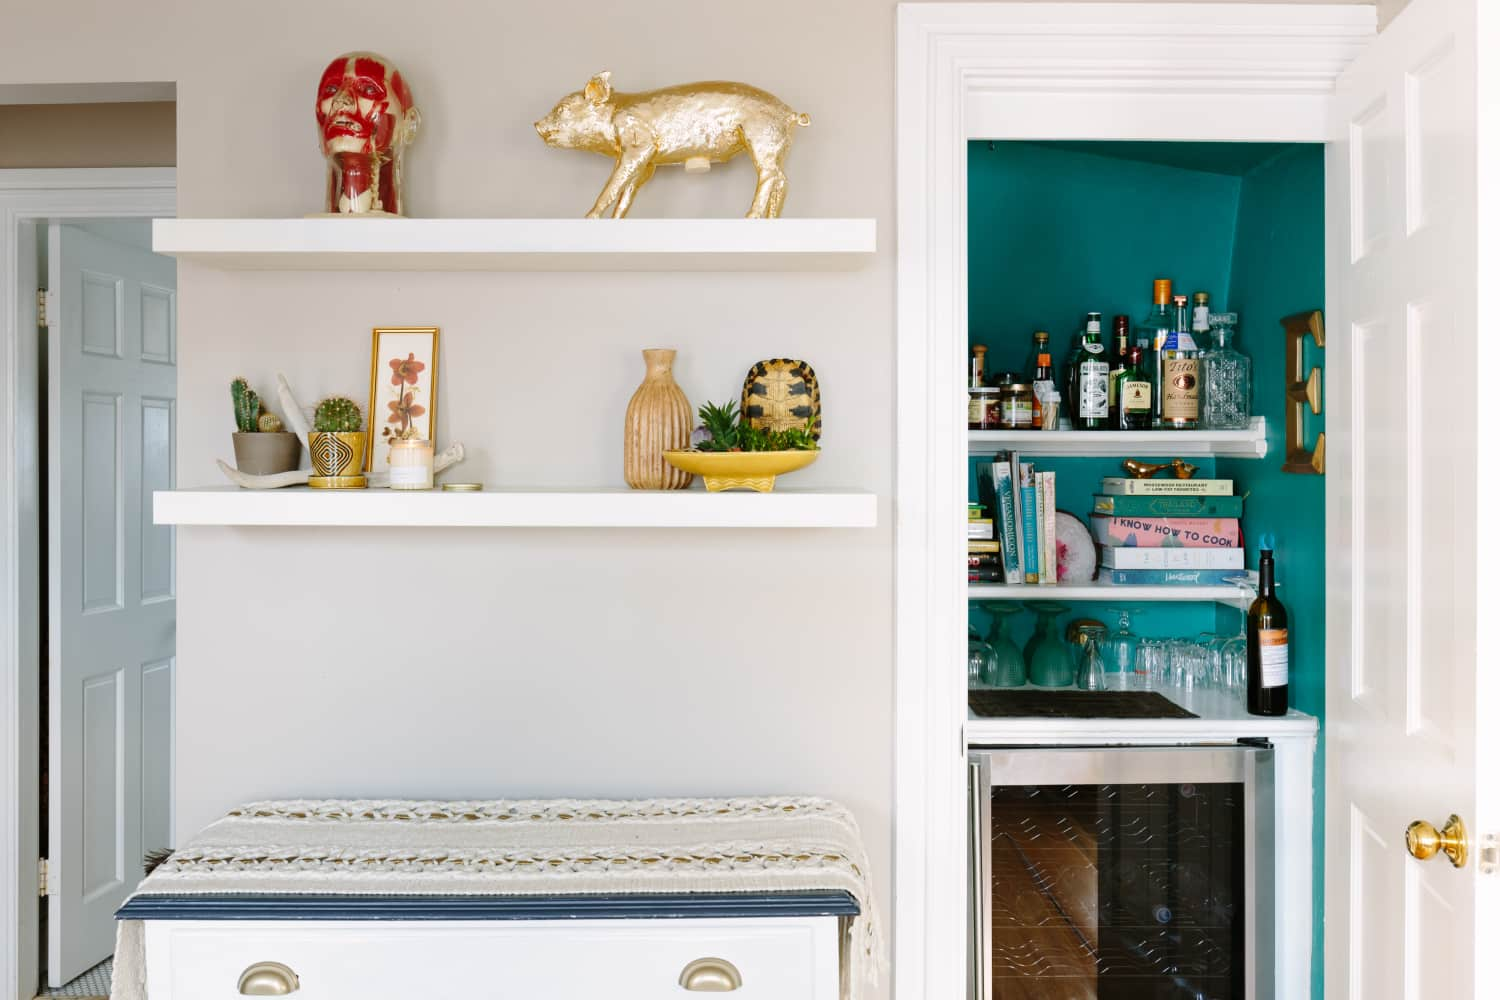 15 Home Organizing Mini-Tasks You Can Tackle in 15 Minutes